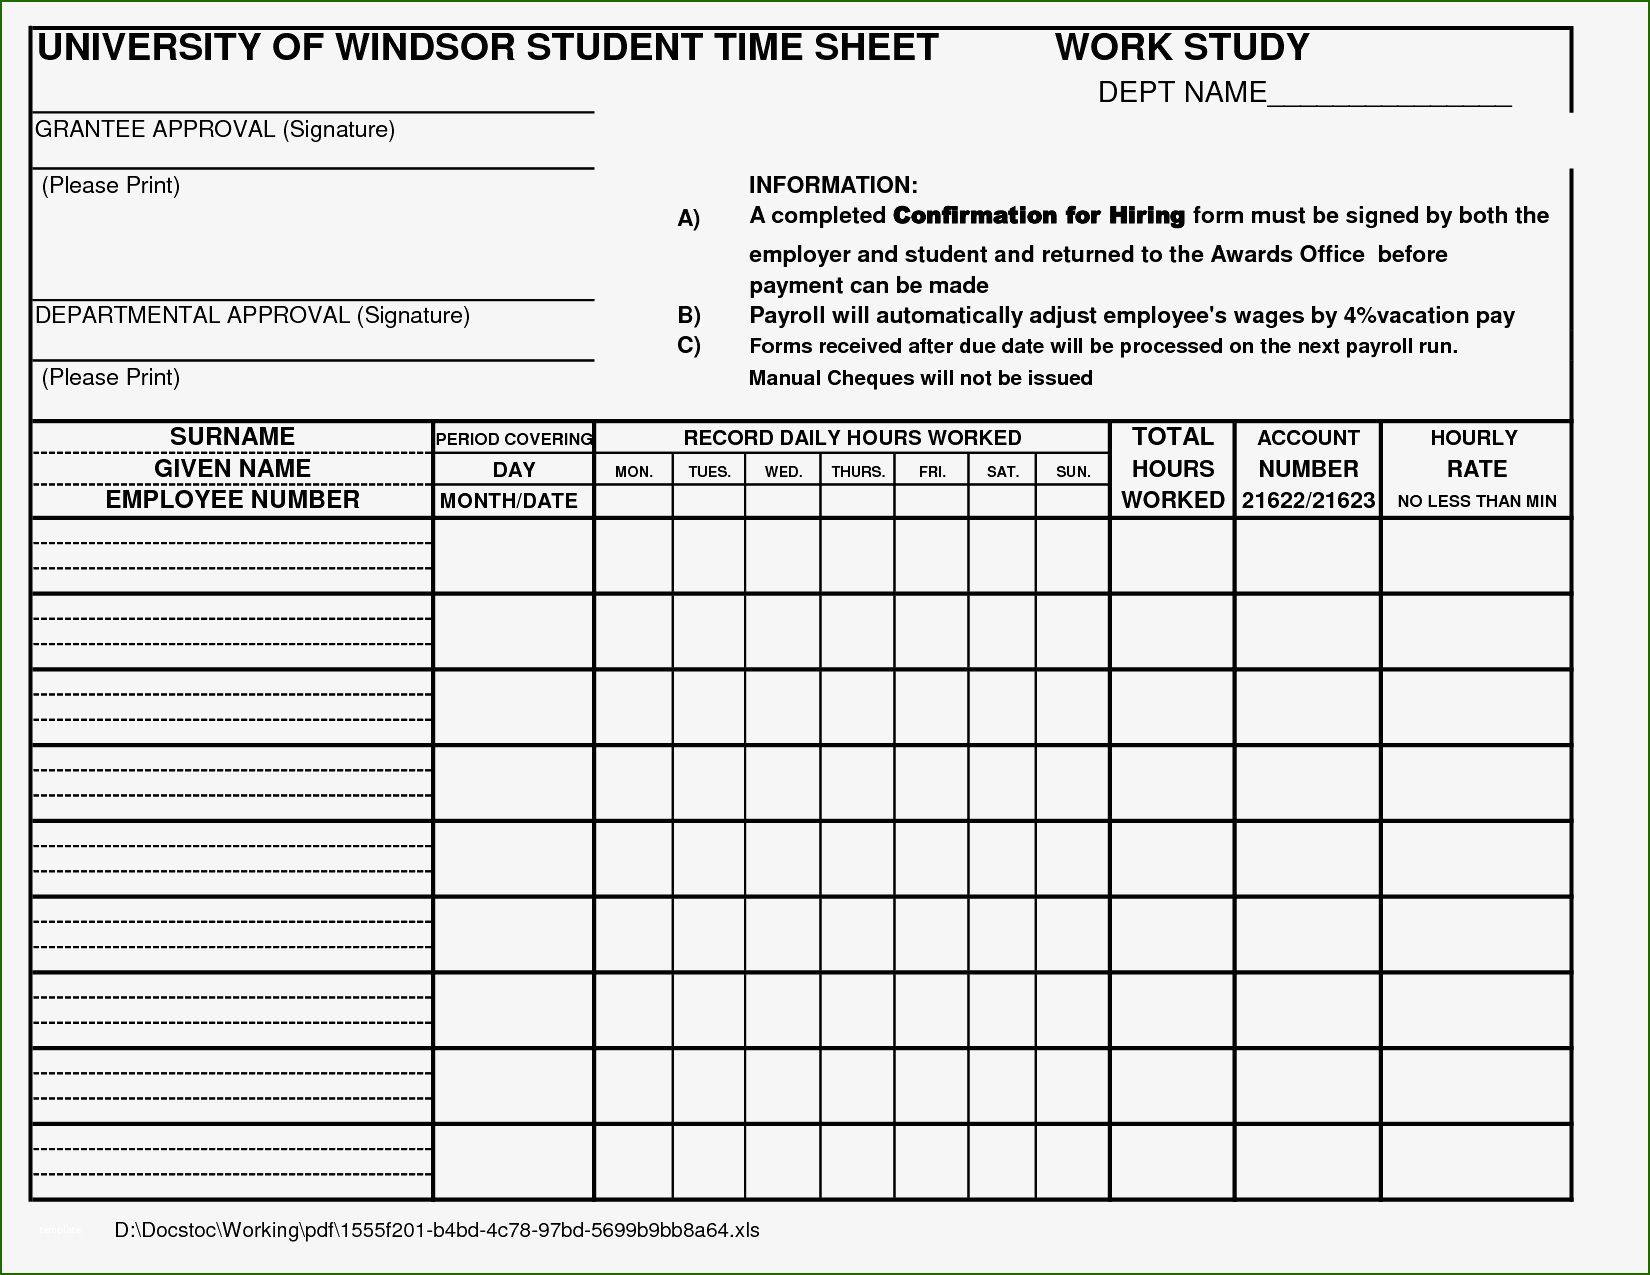 Exquisite Time Study Template Excel You'll Want to Copy